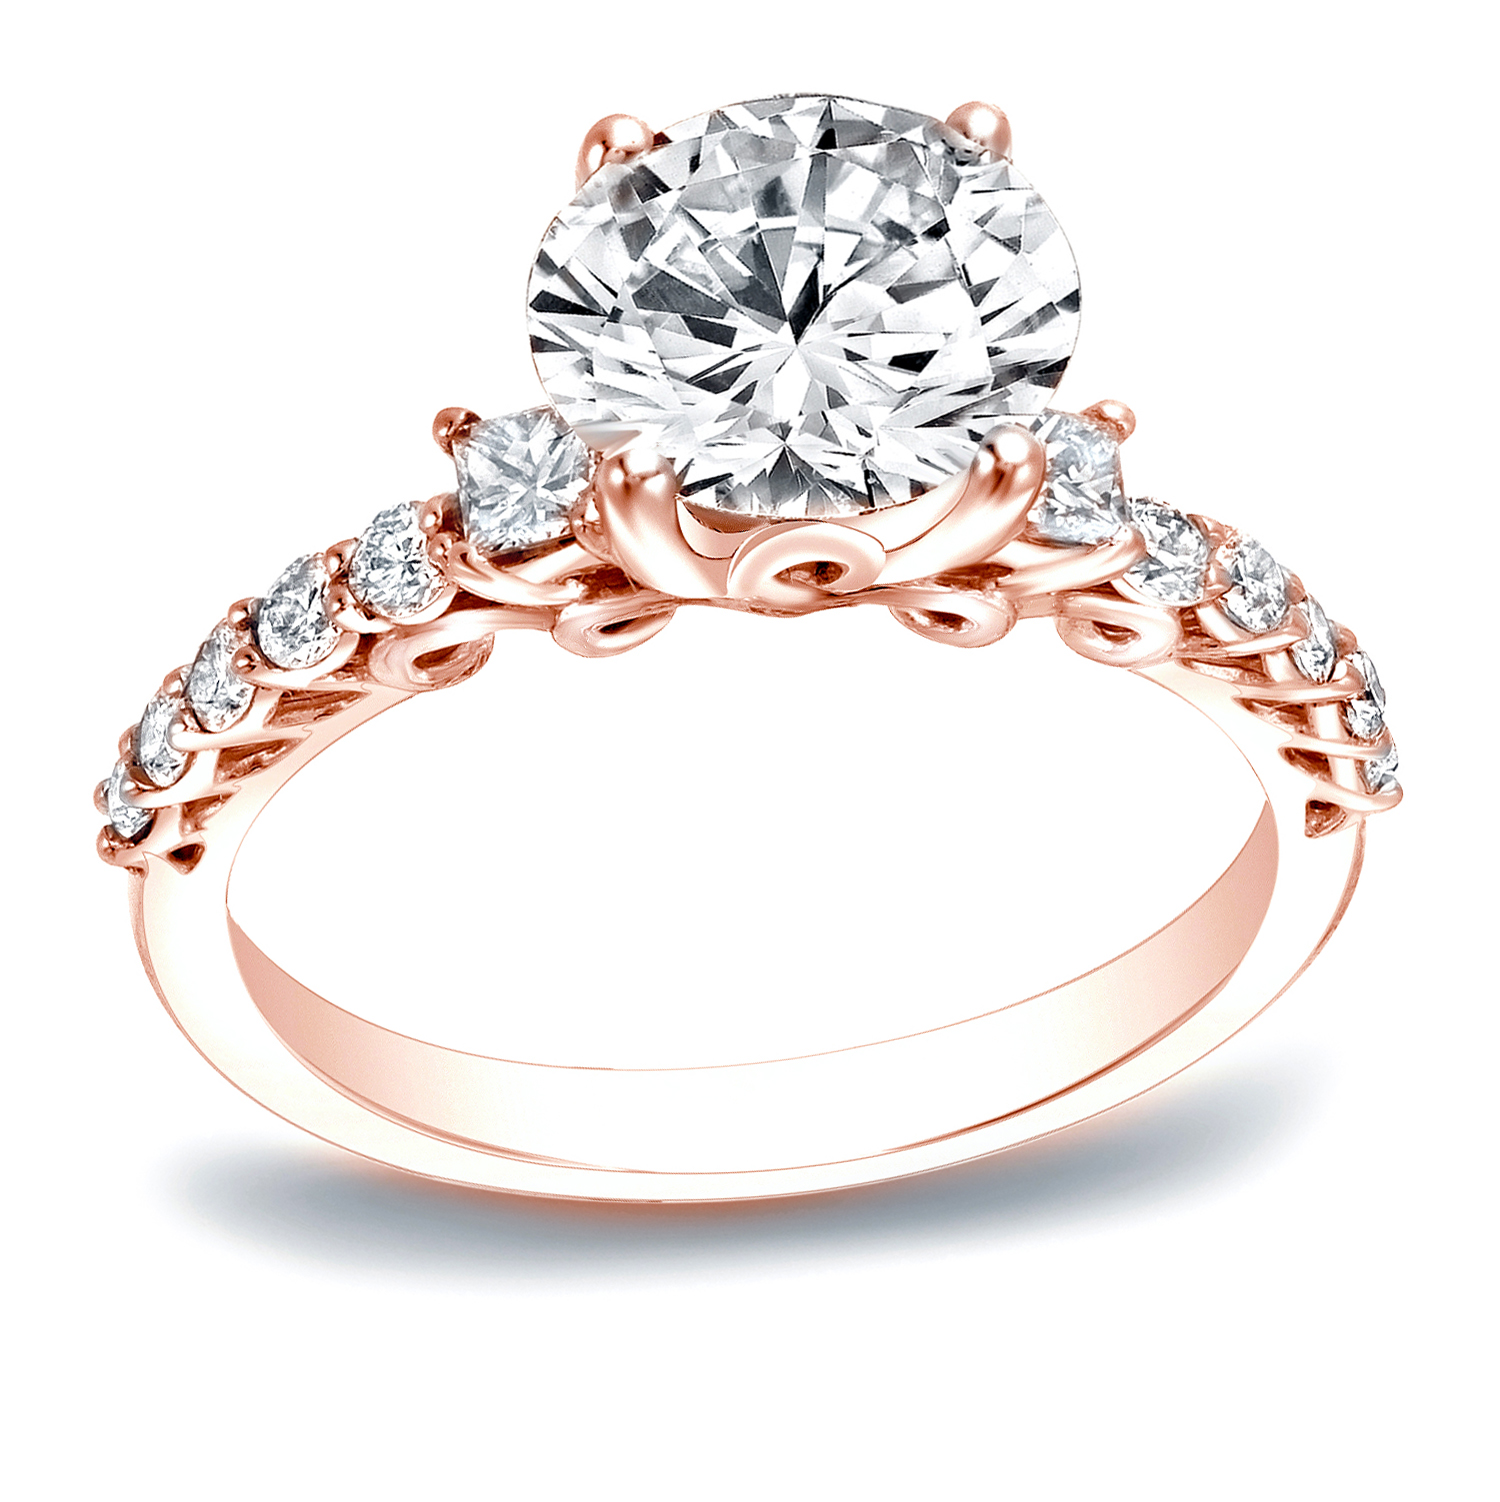 ARIANA Three Stone Engagement Ring In 14K Rose Gold